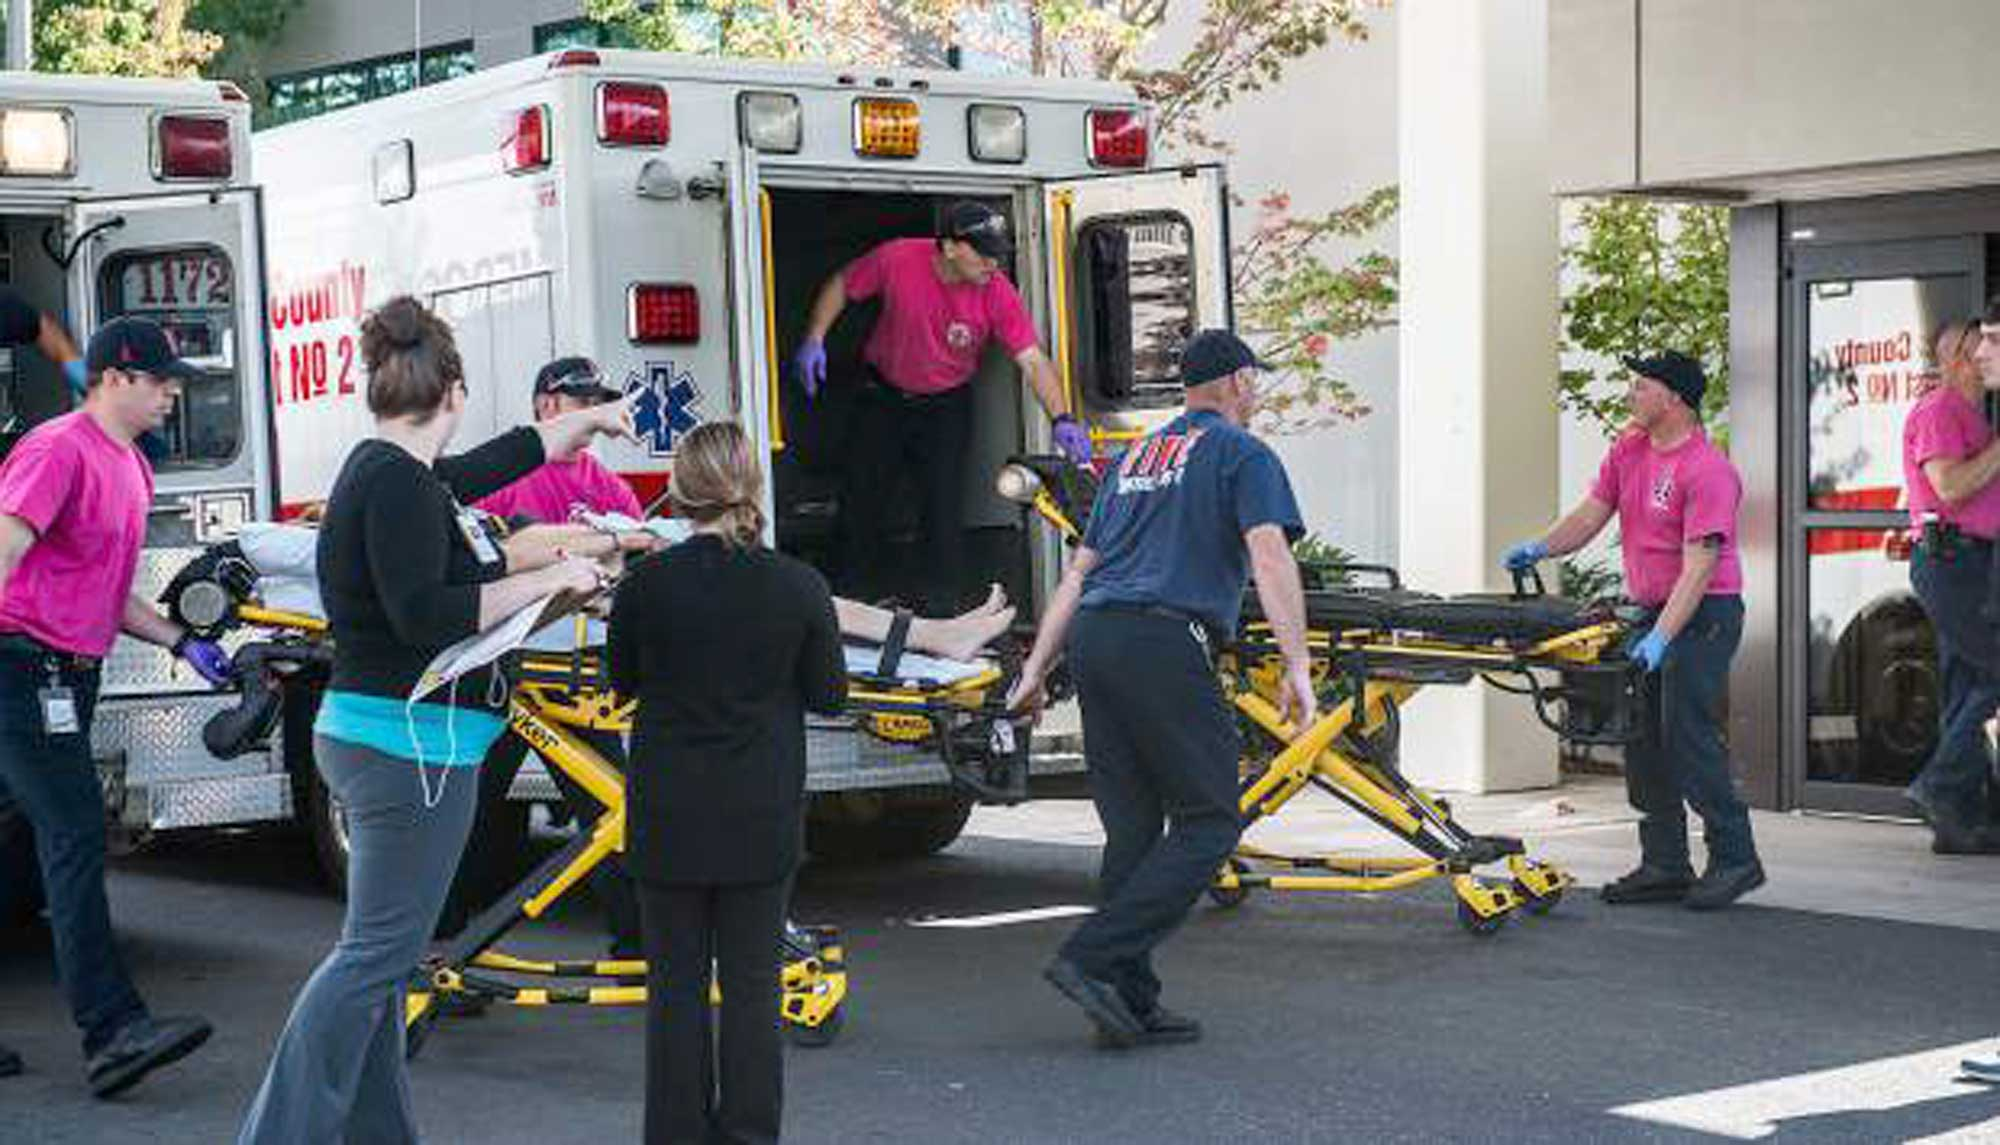 A patient is wheeled into the emergency room at Mercy Medical Center in Roseburg, Ore., following a deadly shooting at Umpqua Community College, in Roseburg,, Oct. 1, 2015.